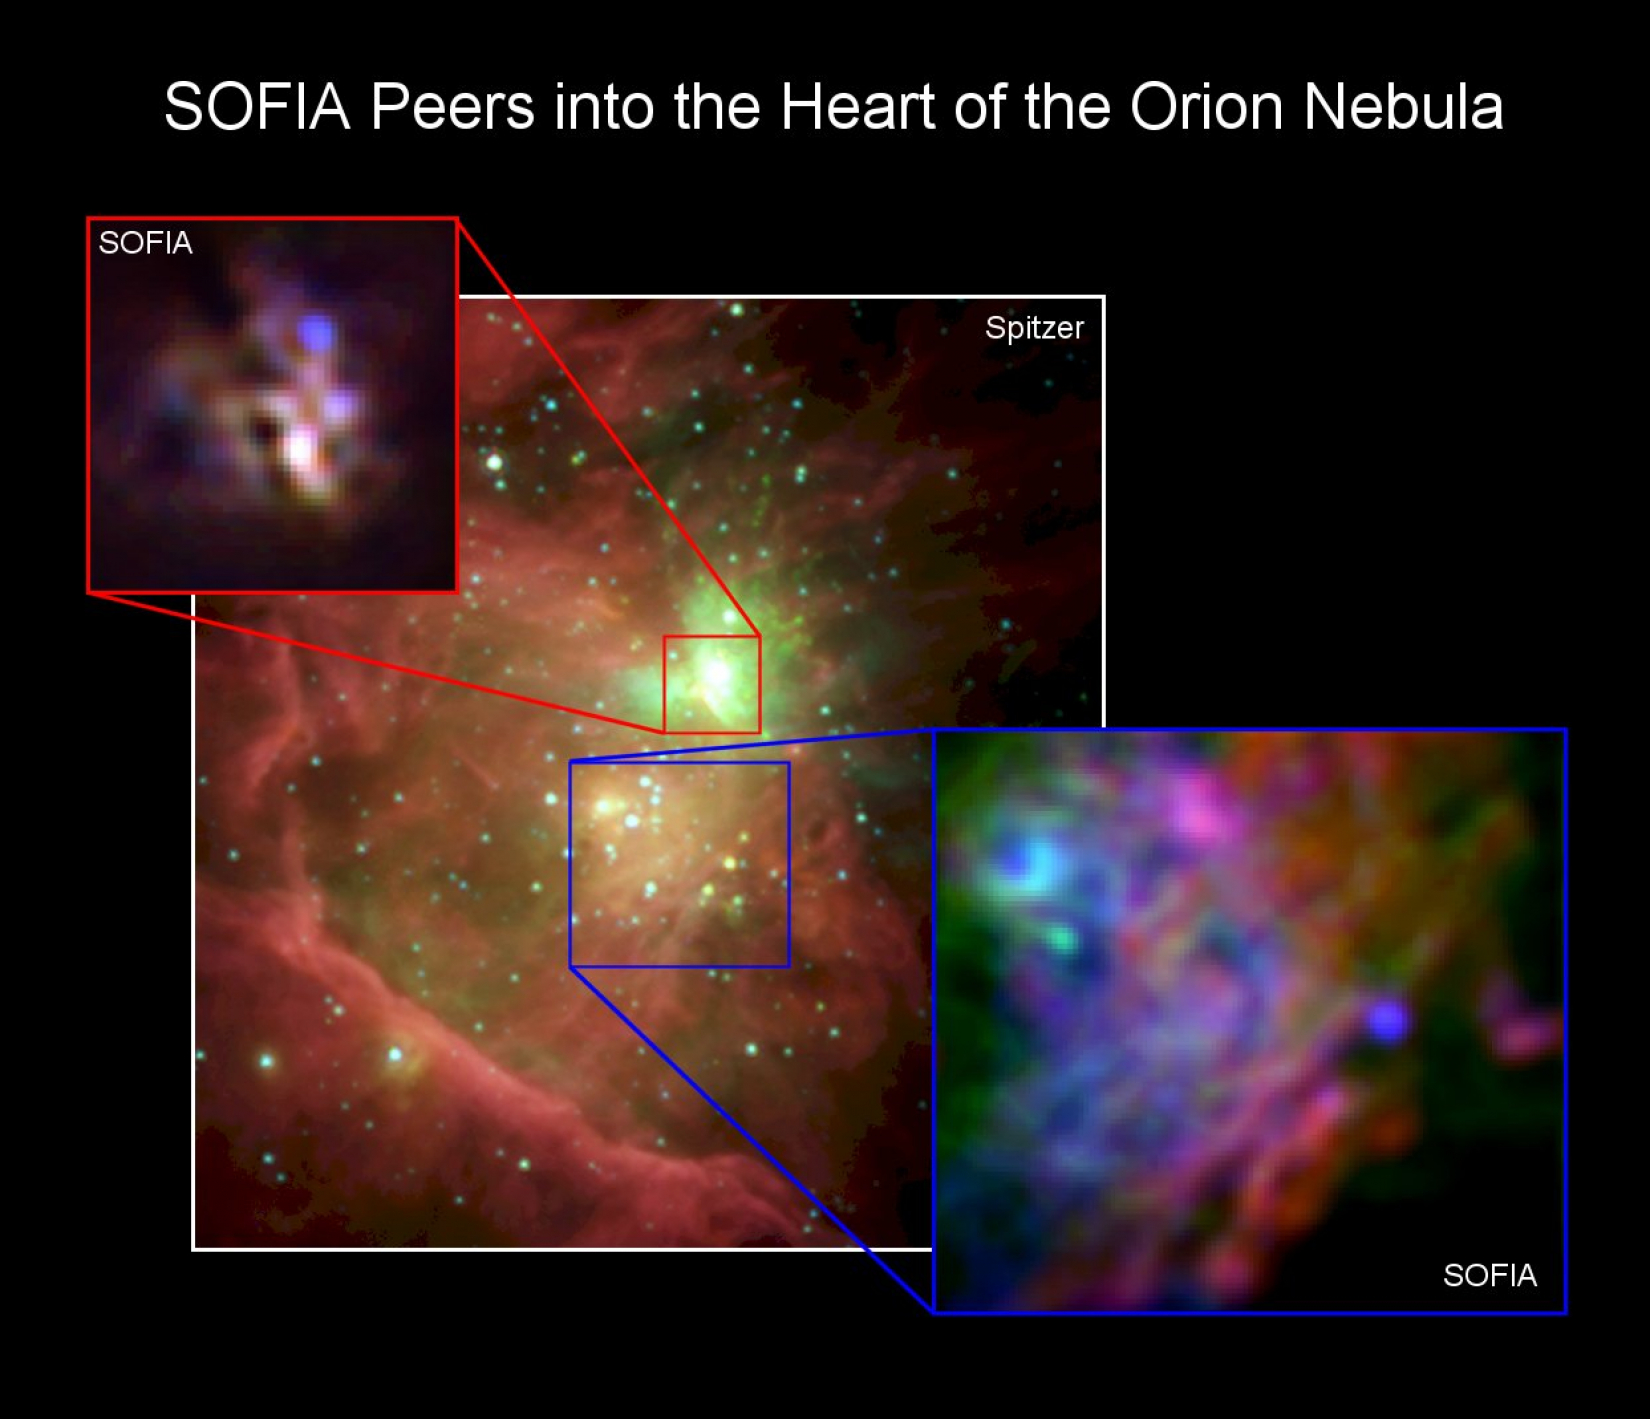 SOFIA Peers into the Heart of the Orion Nebula